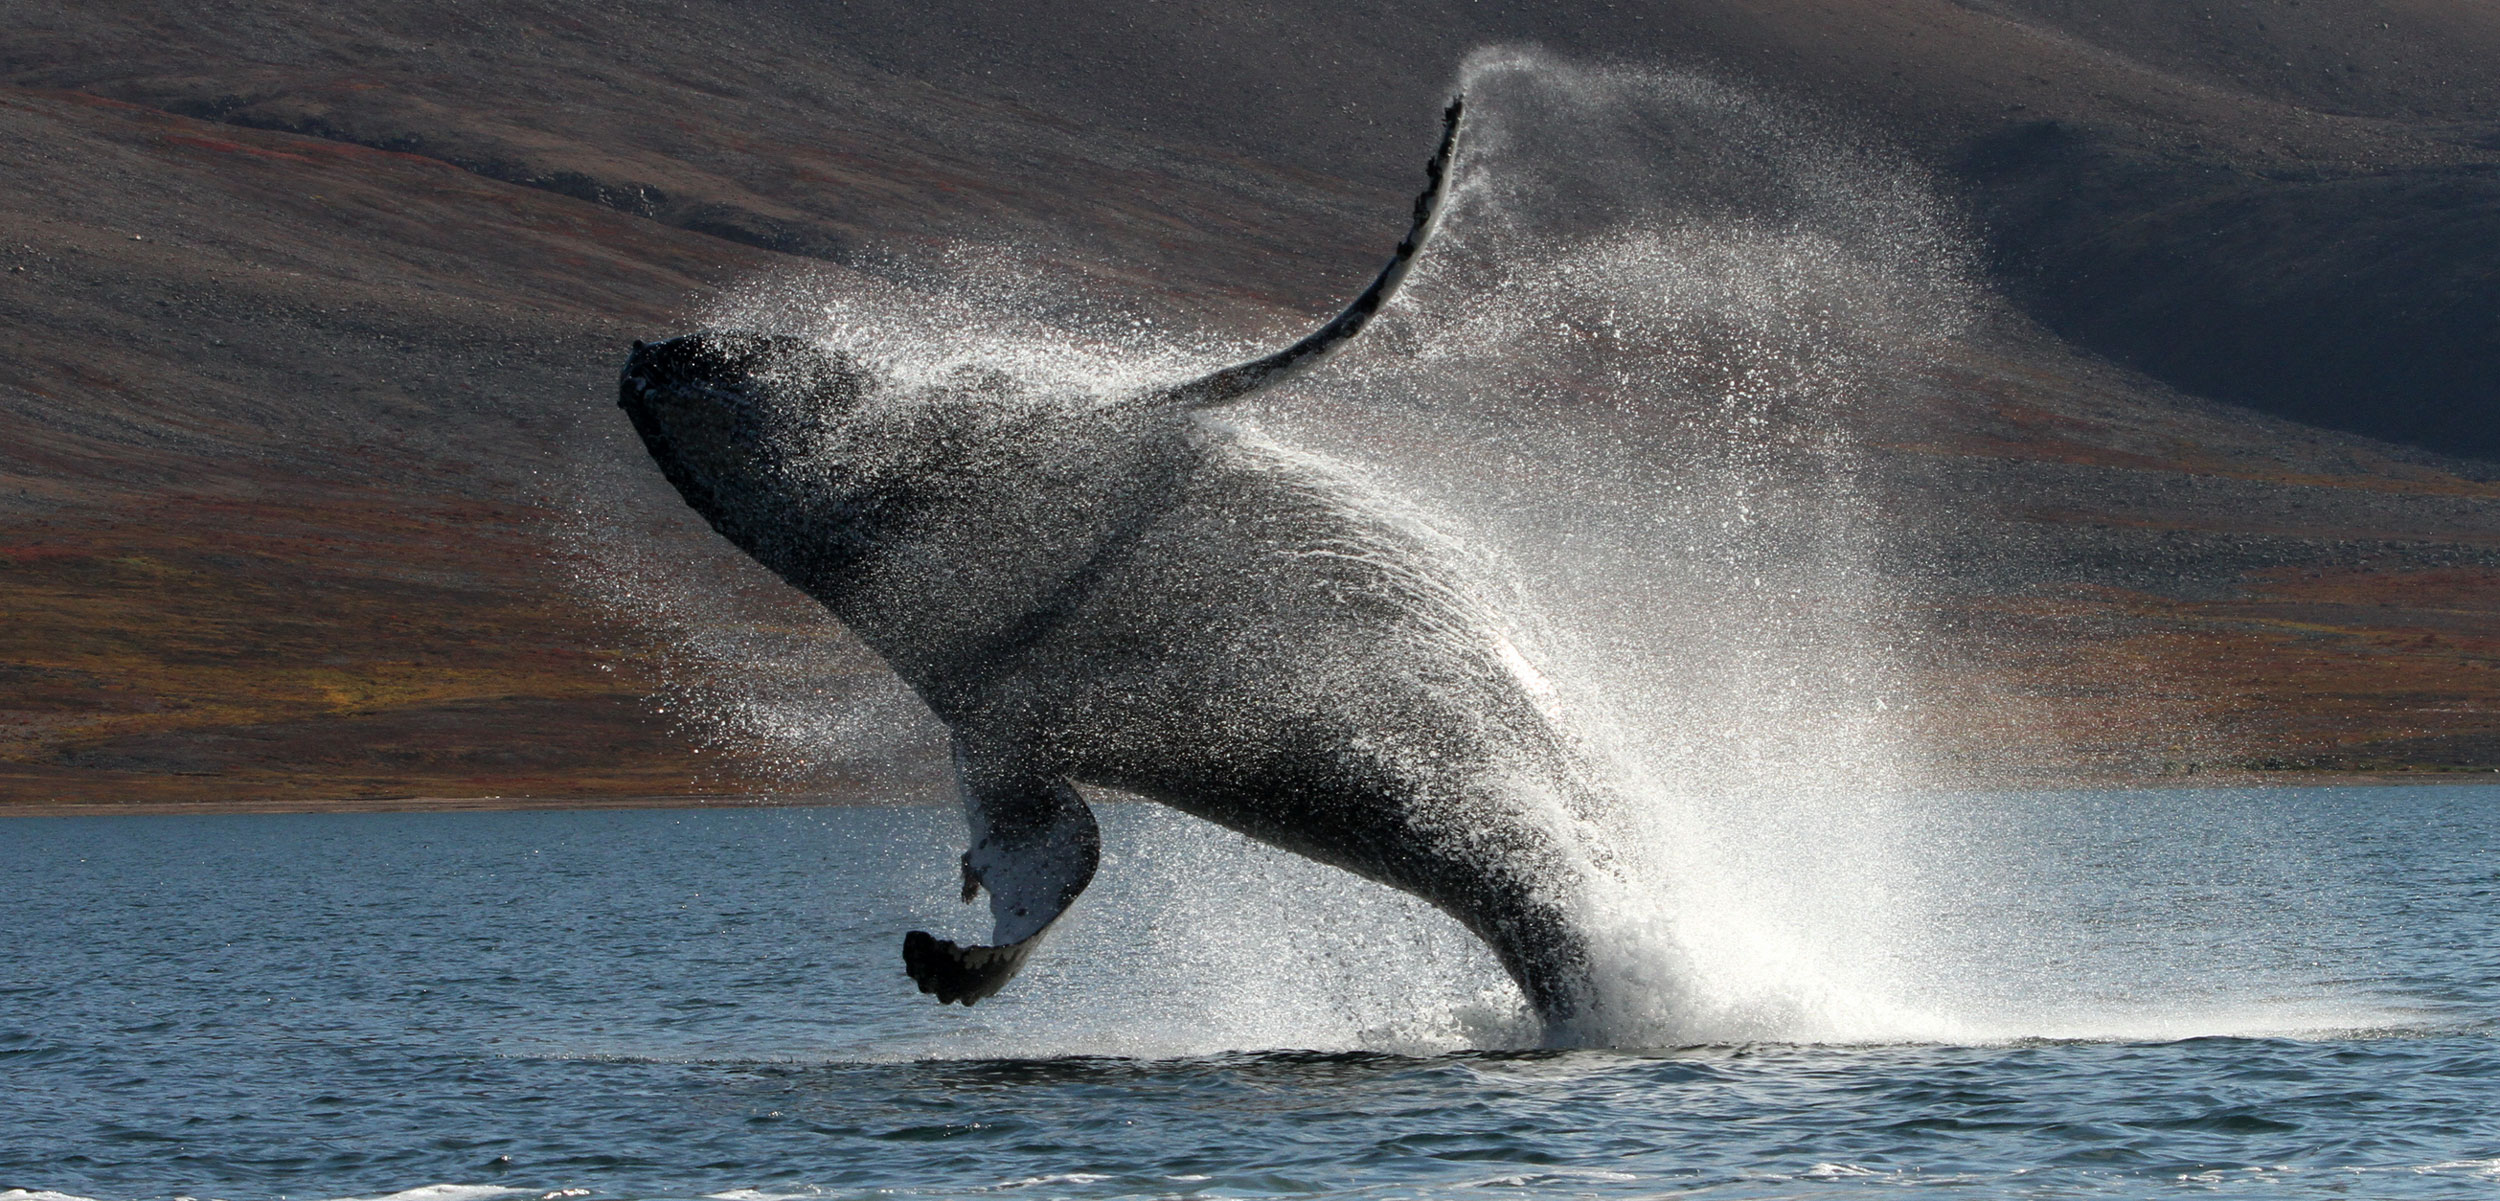 Humpback whale breaching in Russia